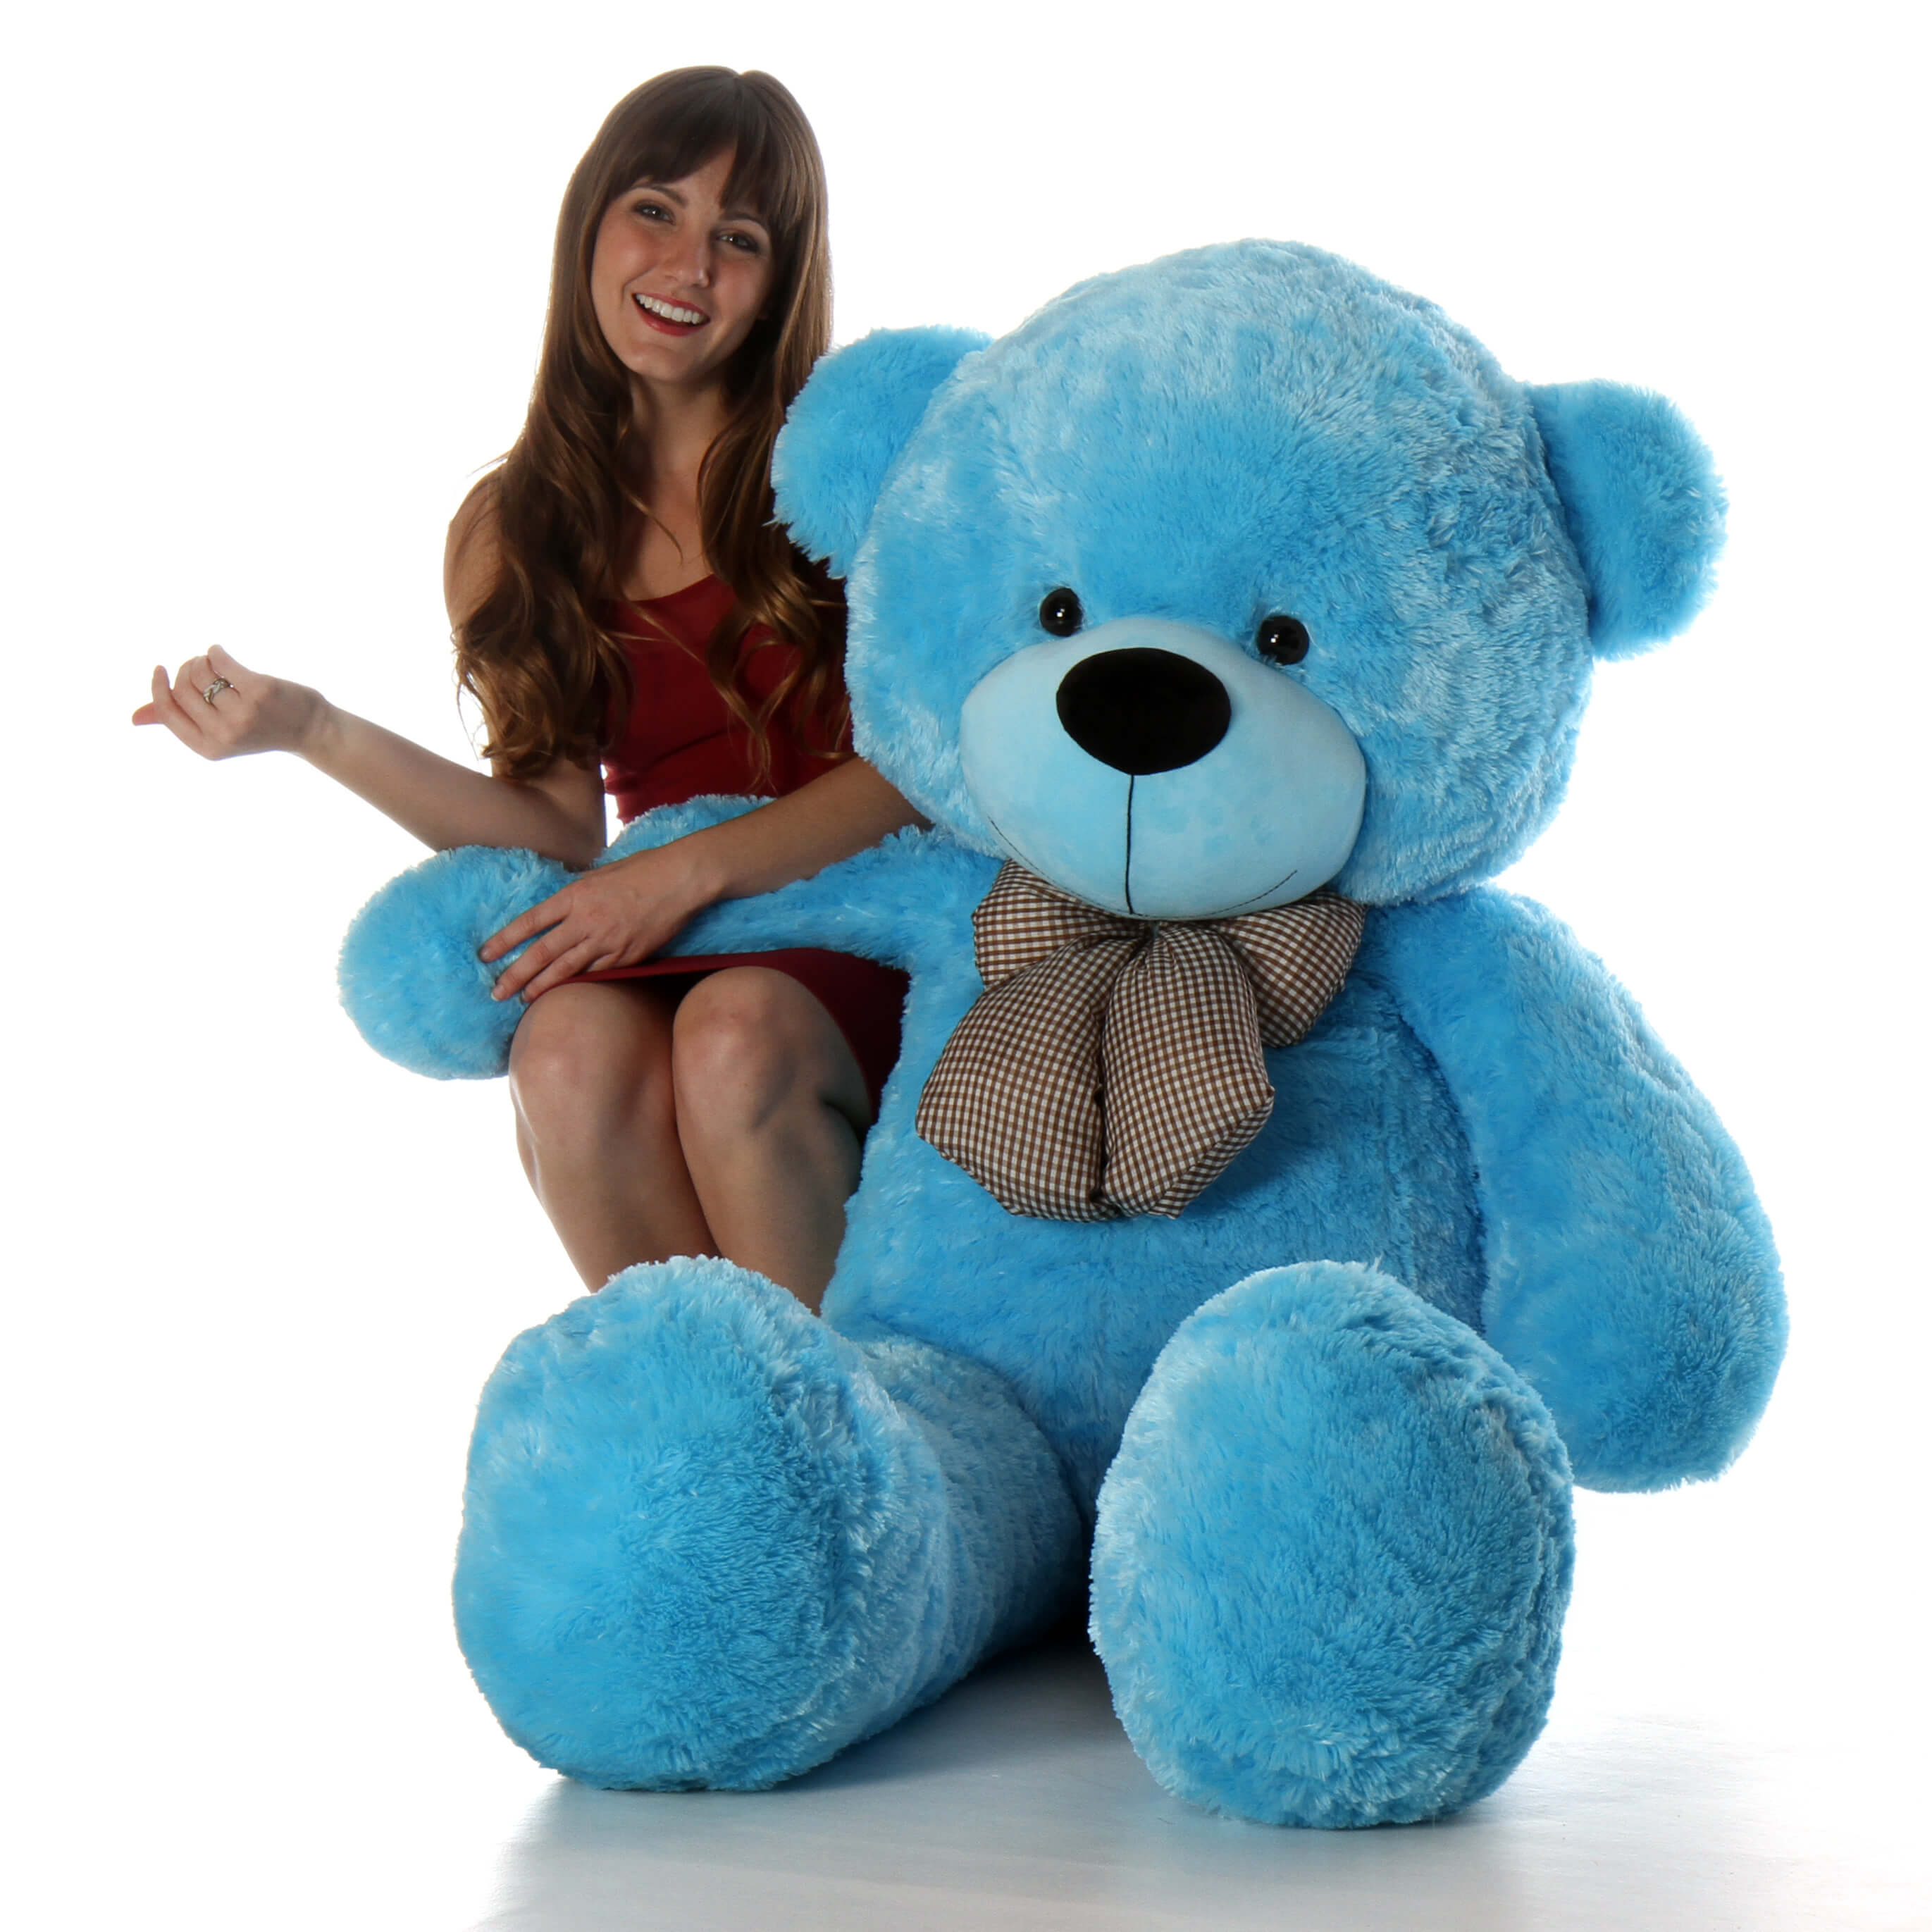 5ft-life-size-teddy-bear-beautiful-light-blue-fur-happy-cuddles-1.jpg